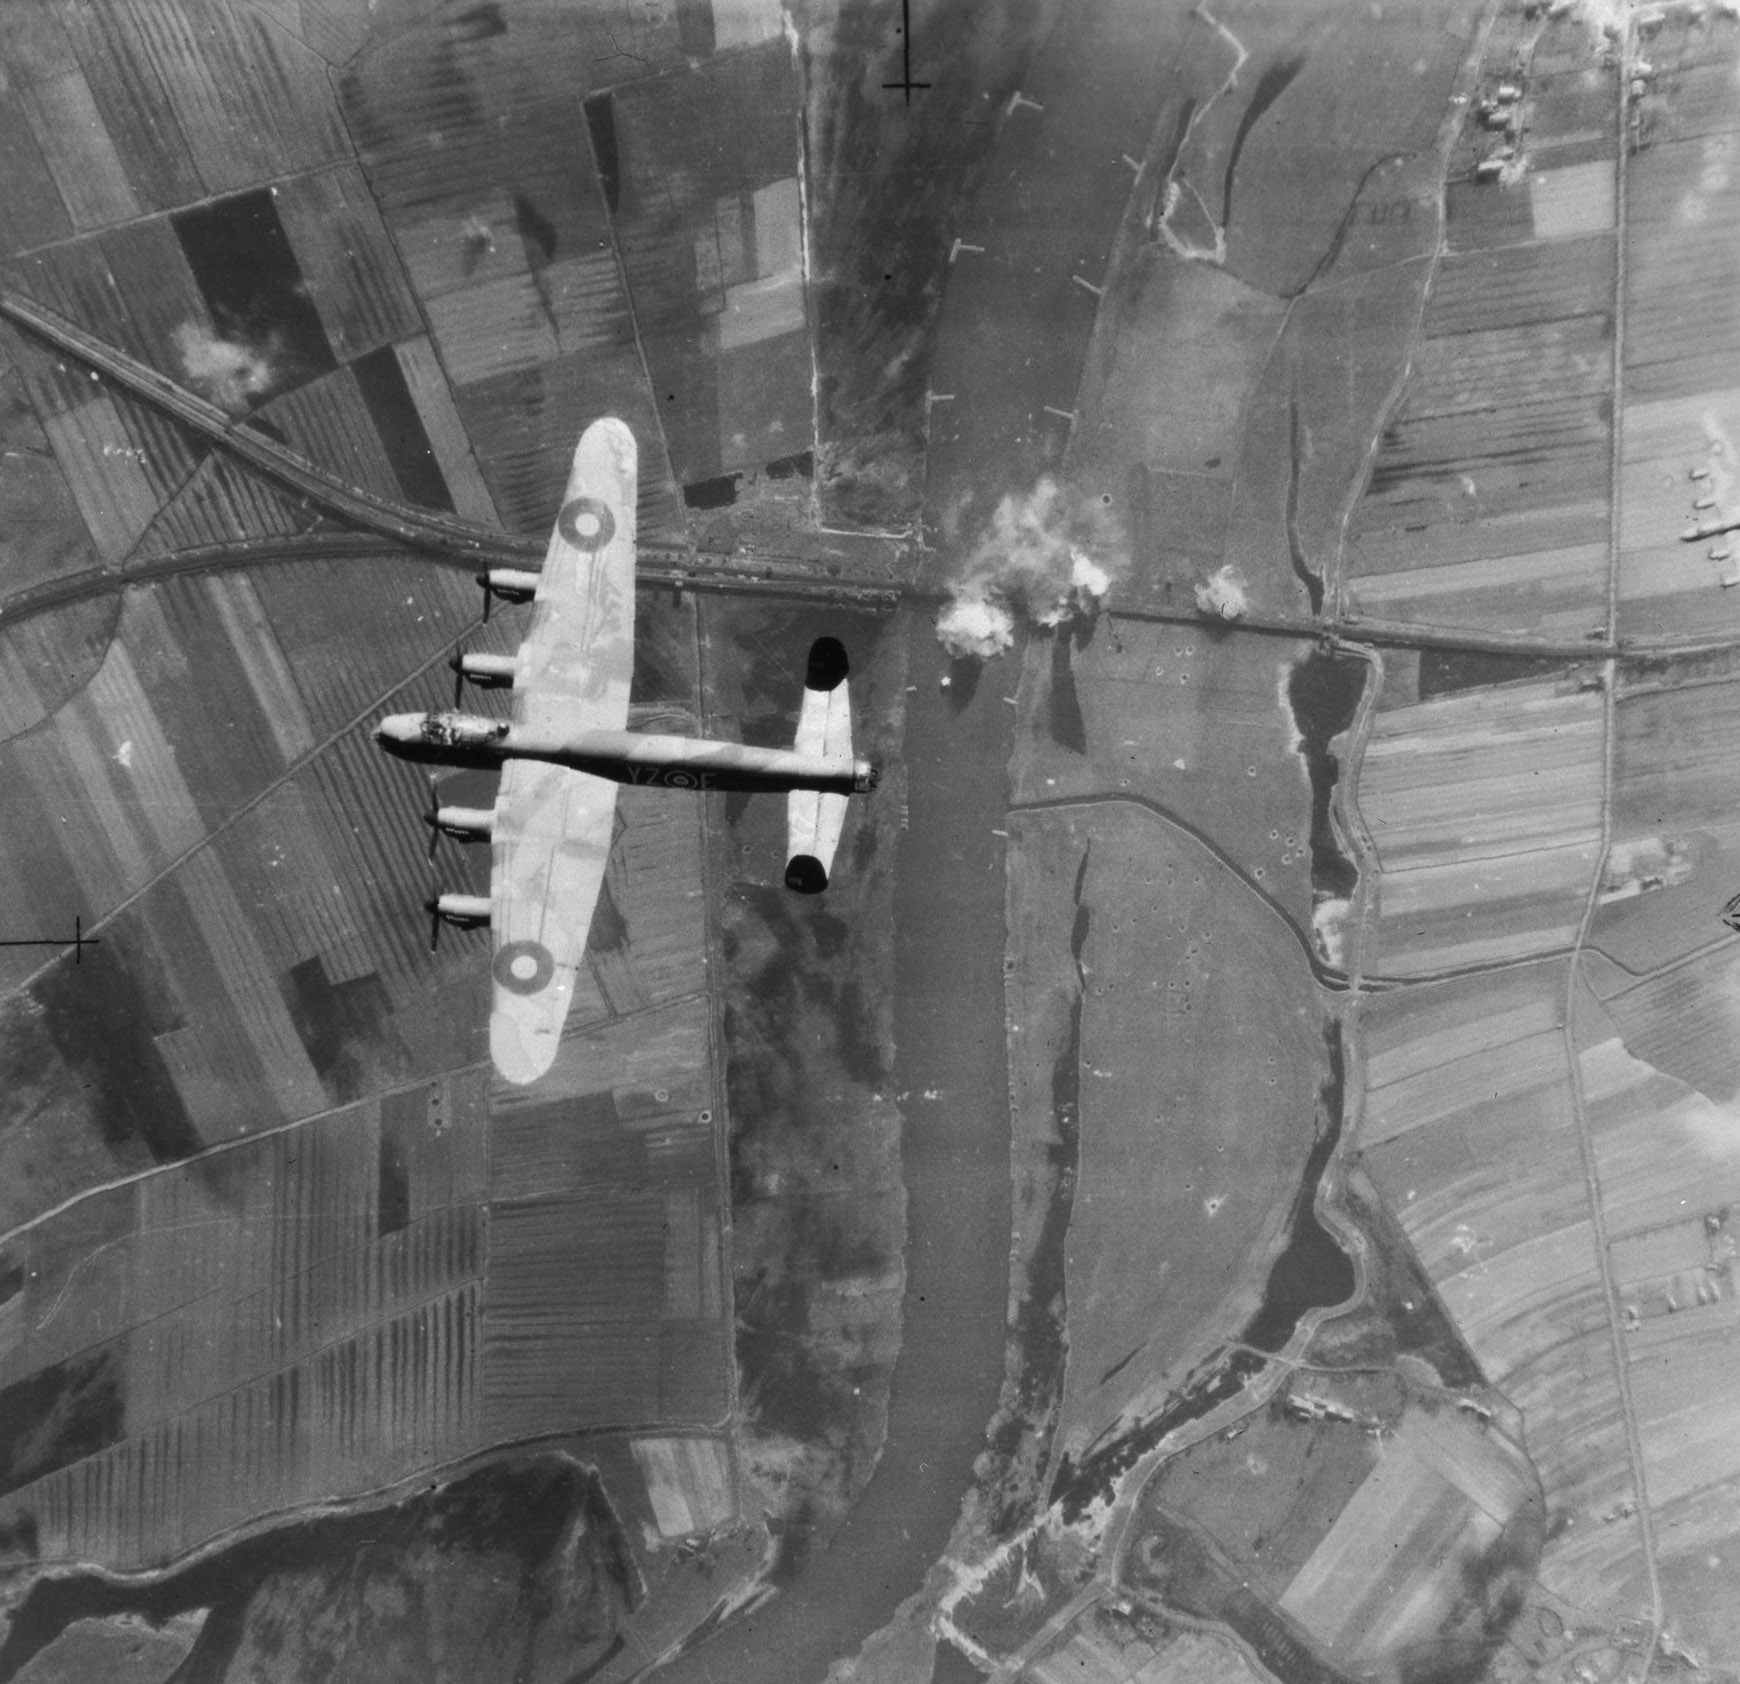 A Second World War Lancaster operated by 617 Squadron, the Dambusters squadron. PHOTO: DND Archives, PL-144260